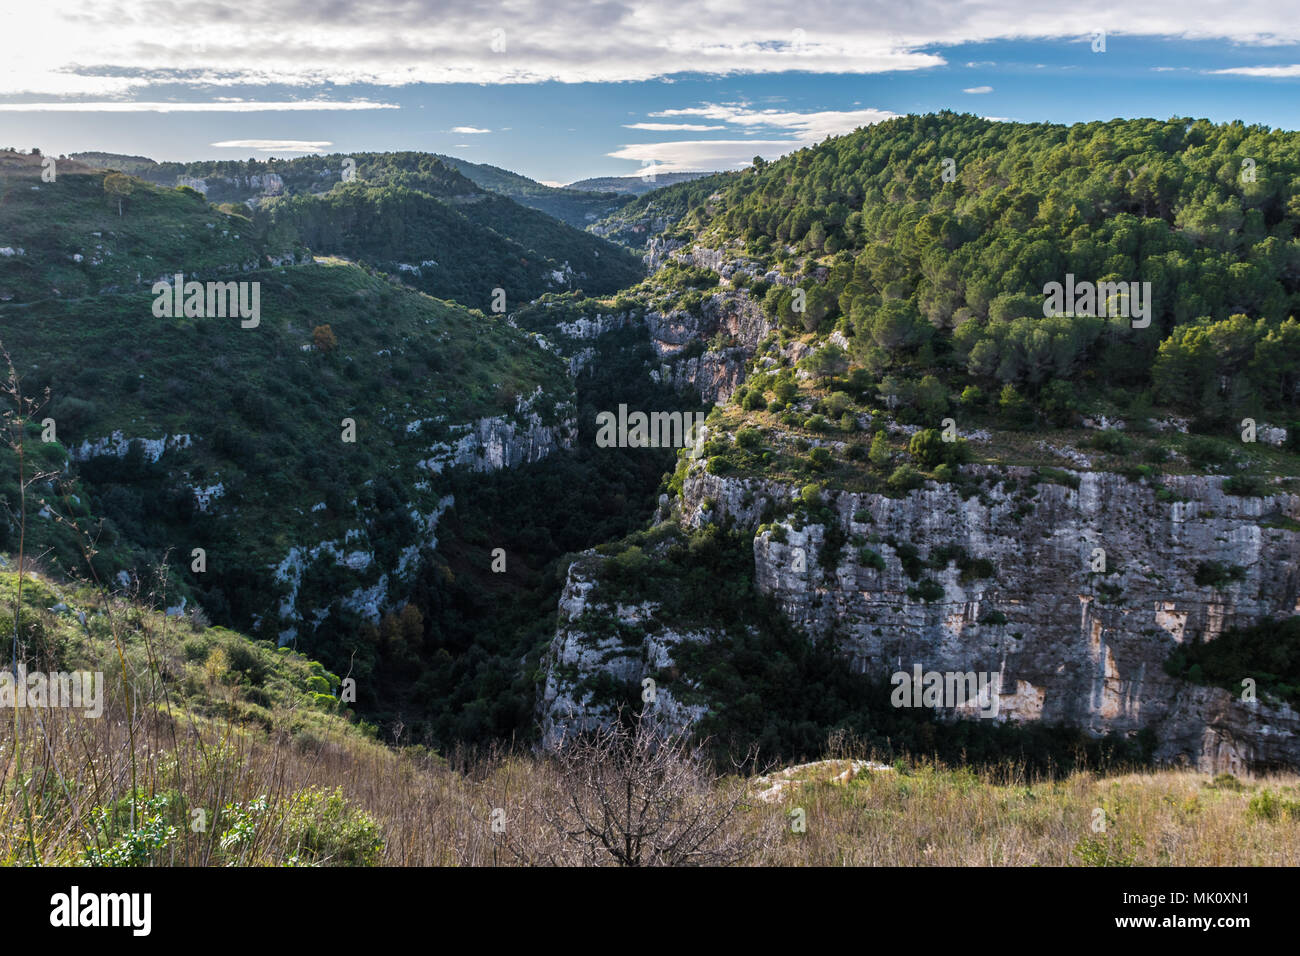 Panoramic view of the Anapo valley and the Pantalica plateau near Siracusa, in Sicily - Stock Image